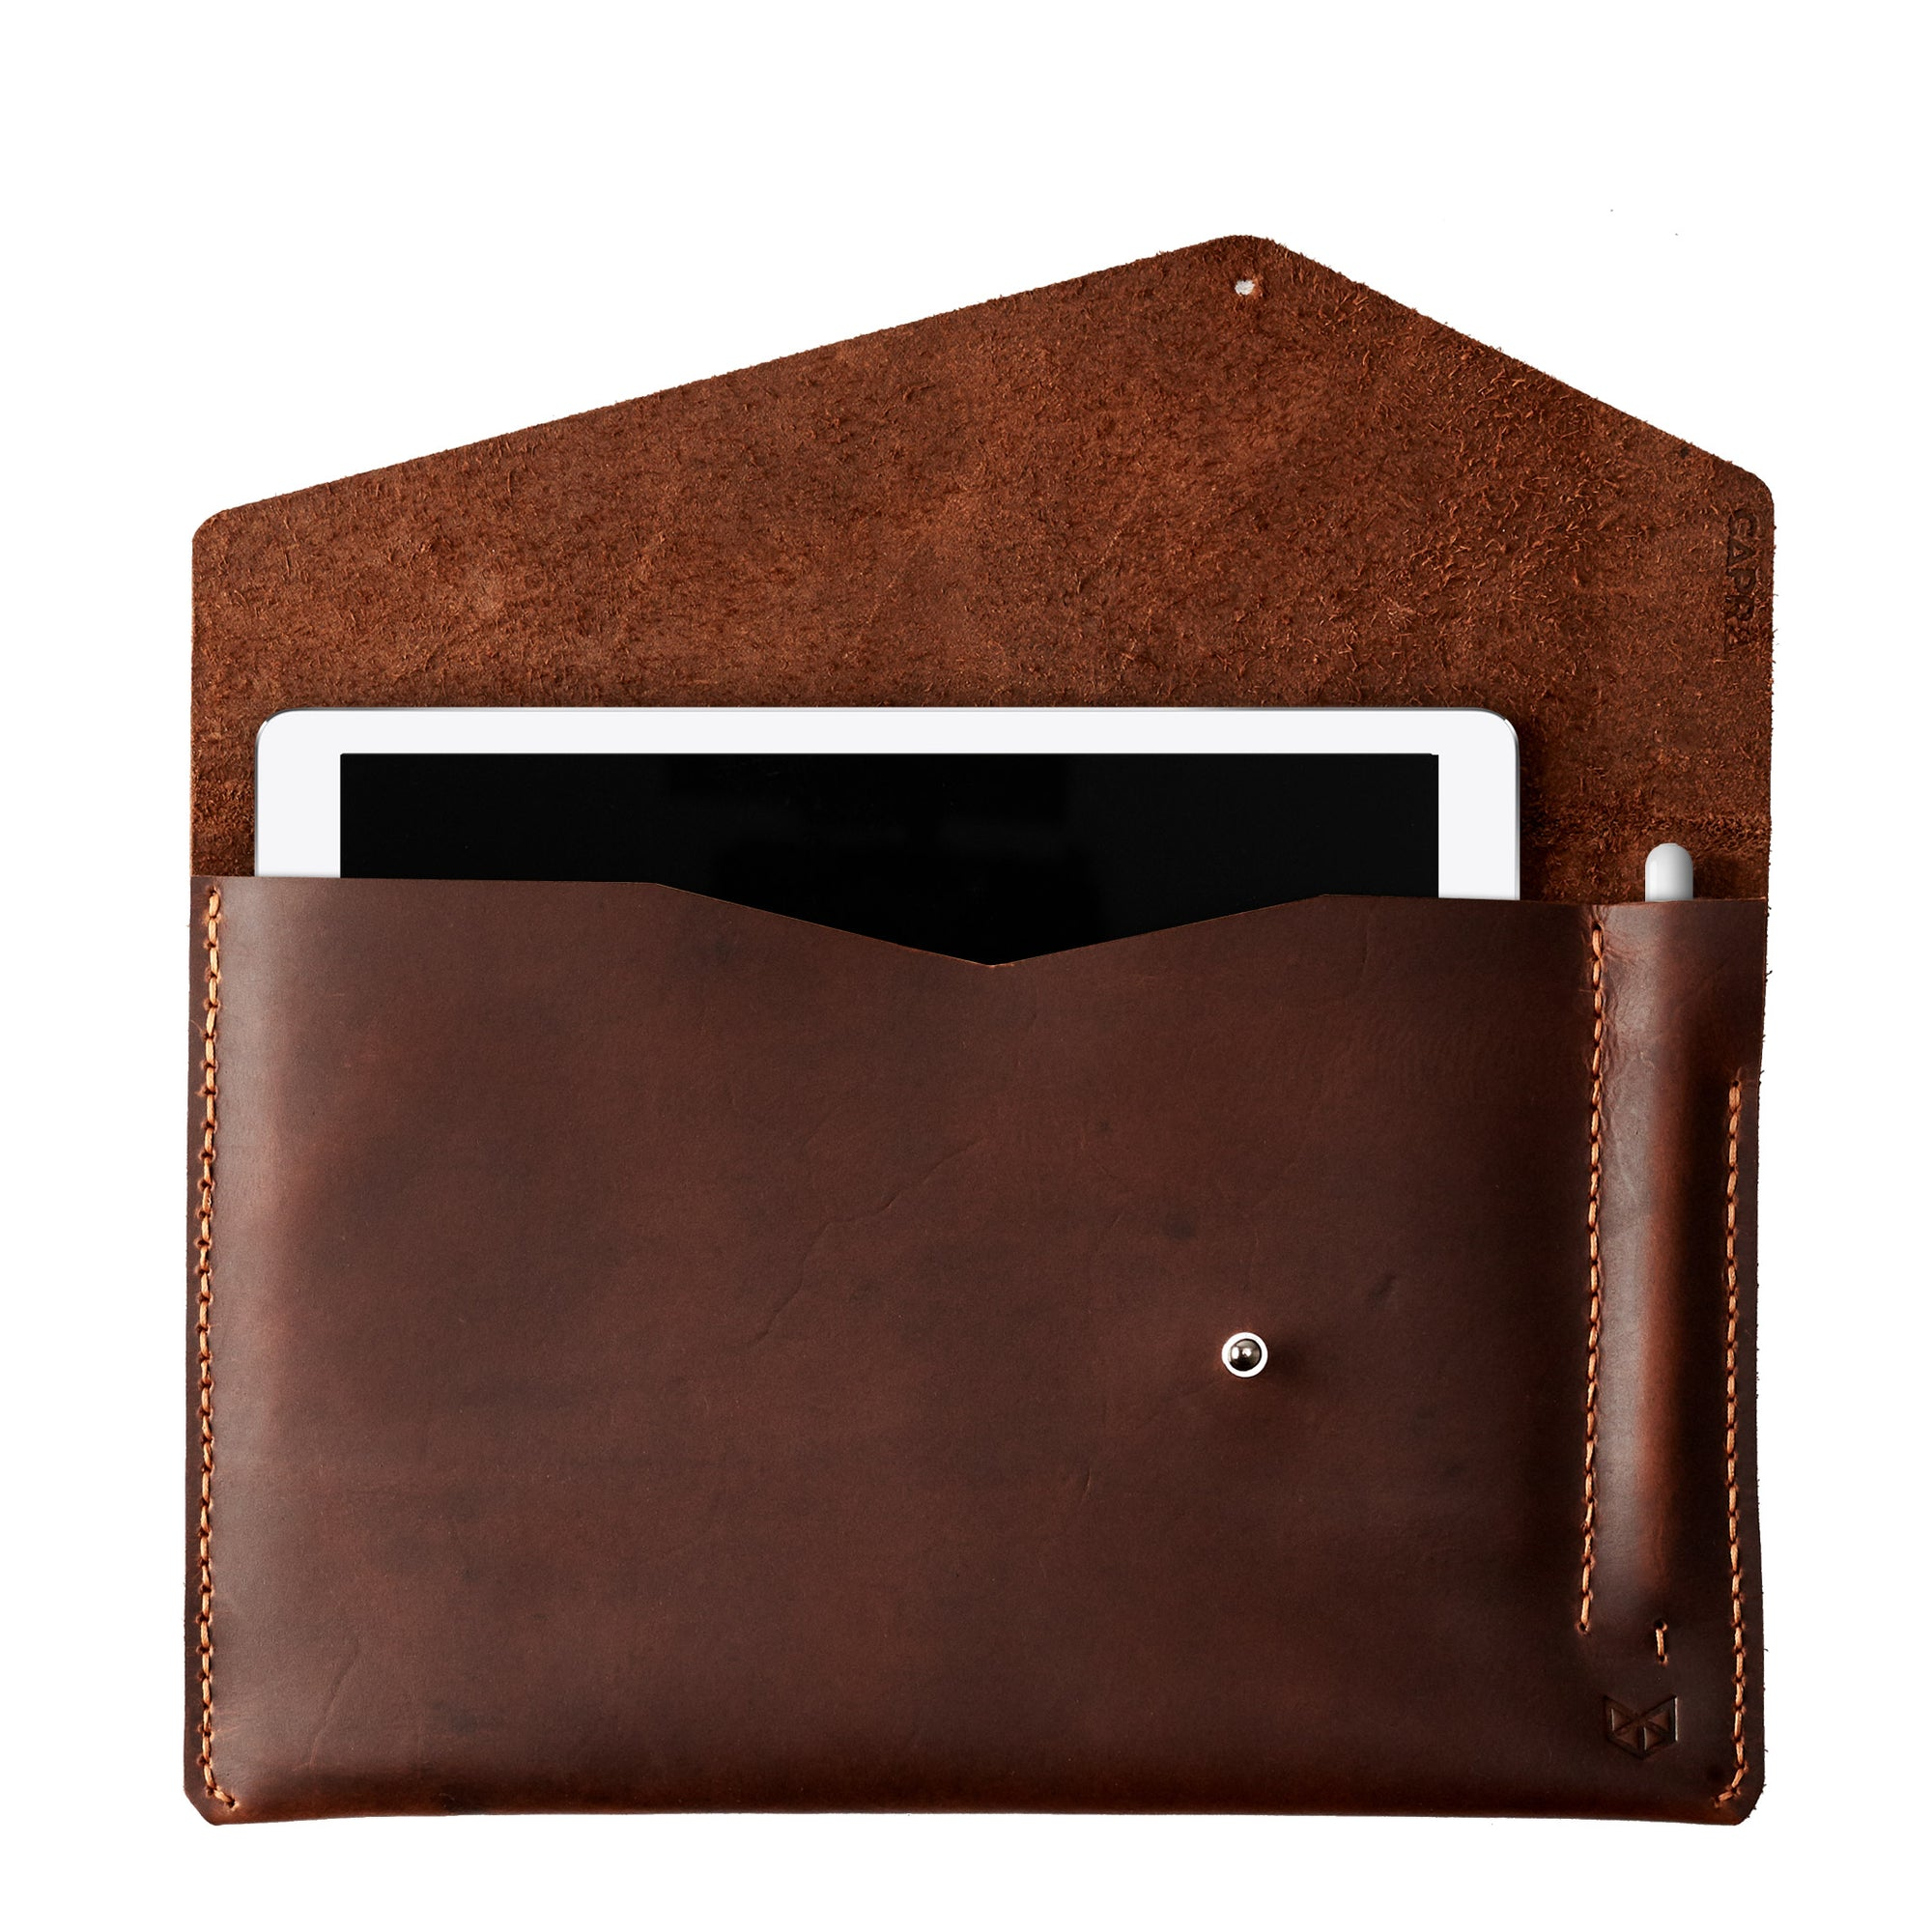 Tan leather sleeve for iPad pro 10.5 inch 12.9 inch. Mens gifts